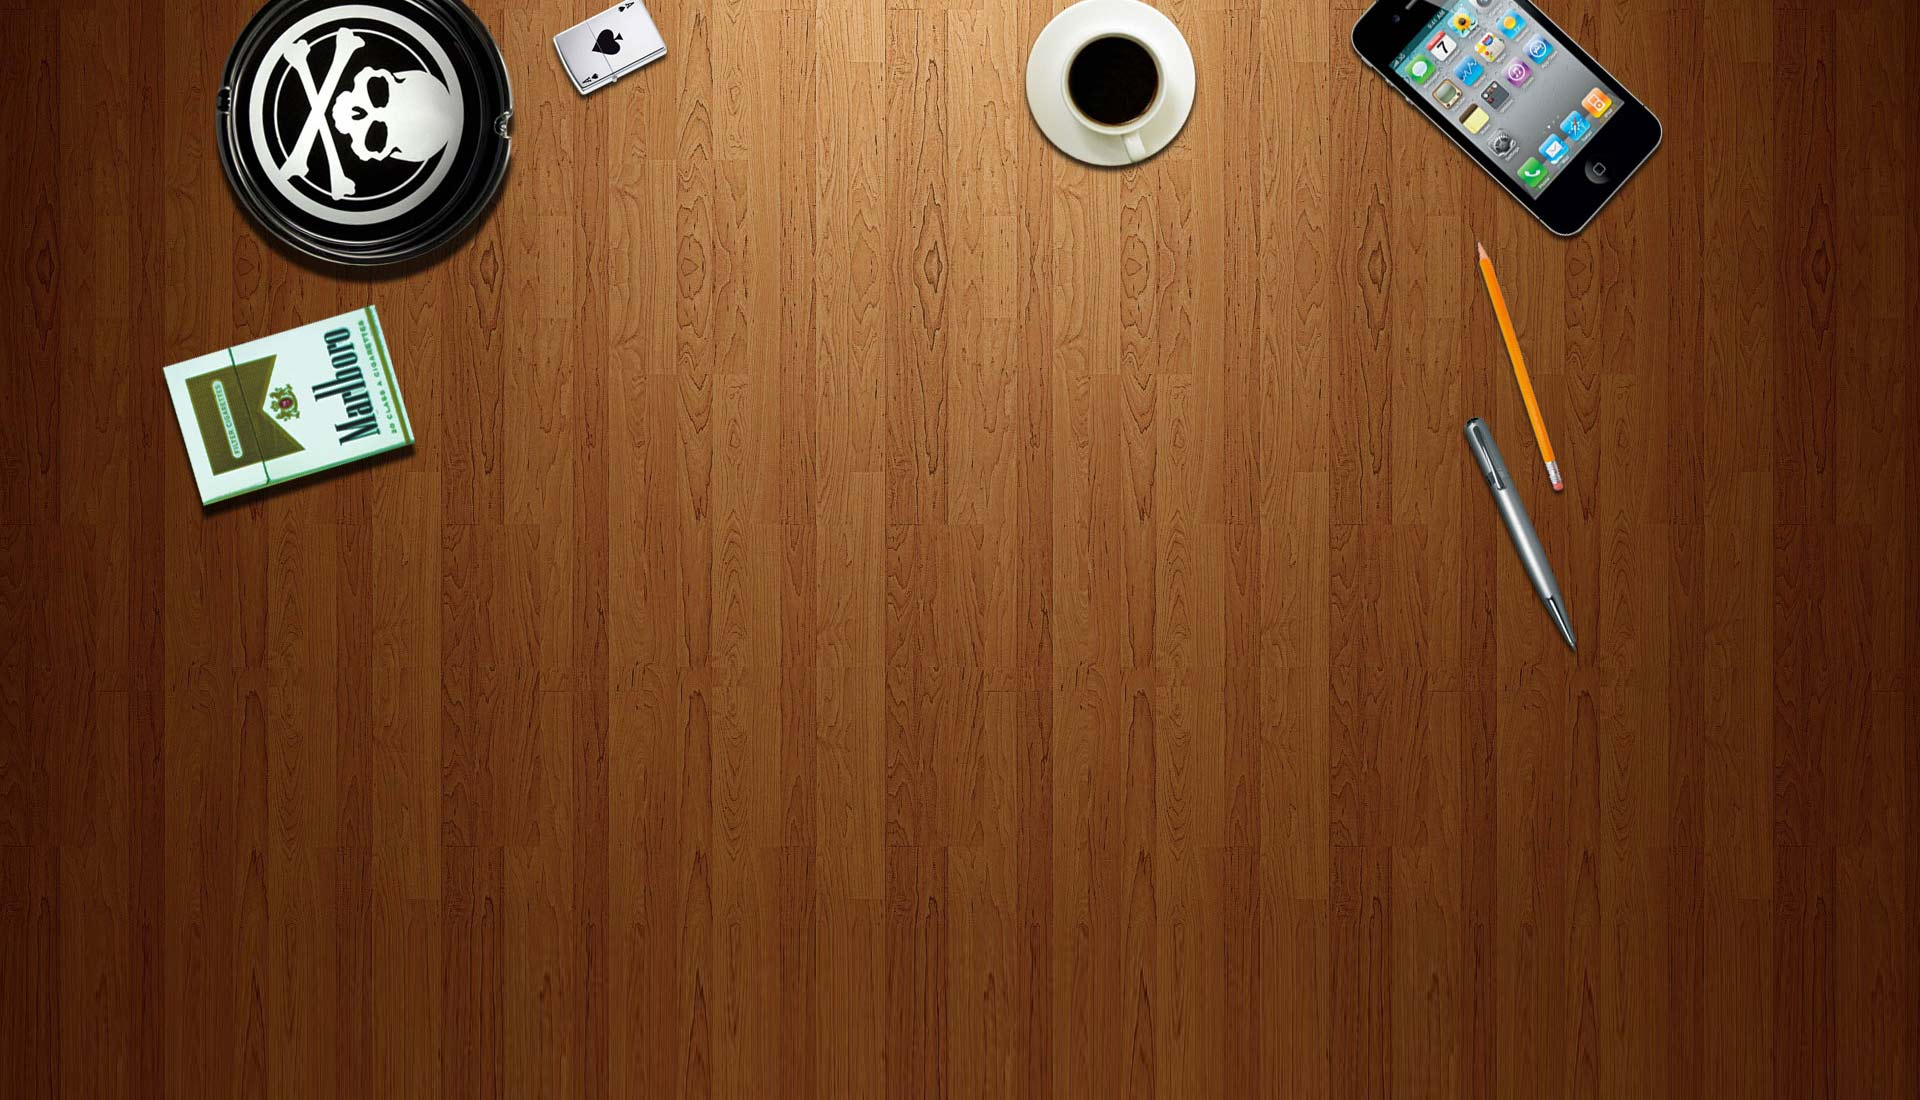 background desk wood texture objects scratch by archibald-butler